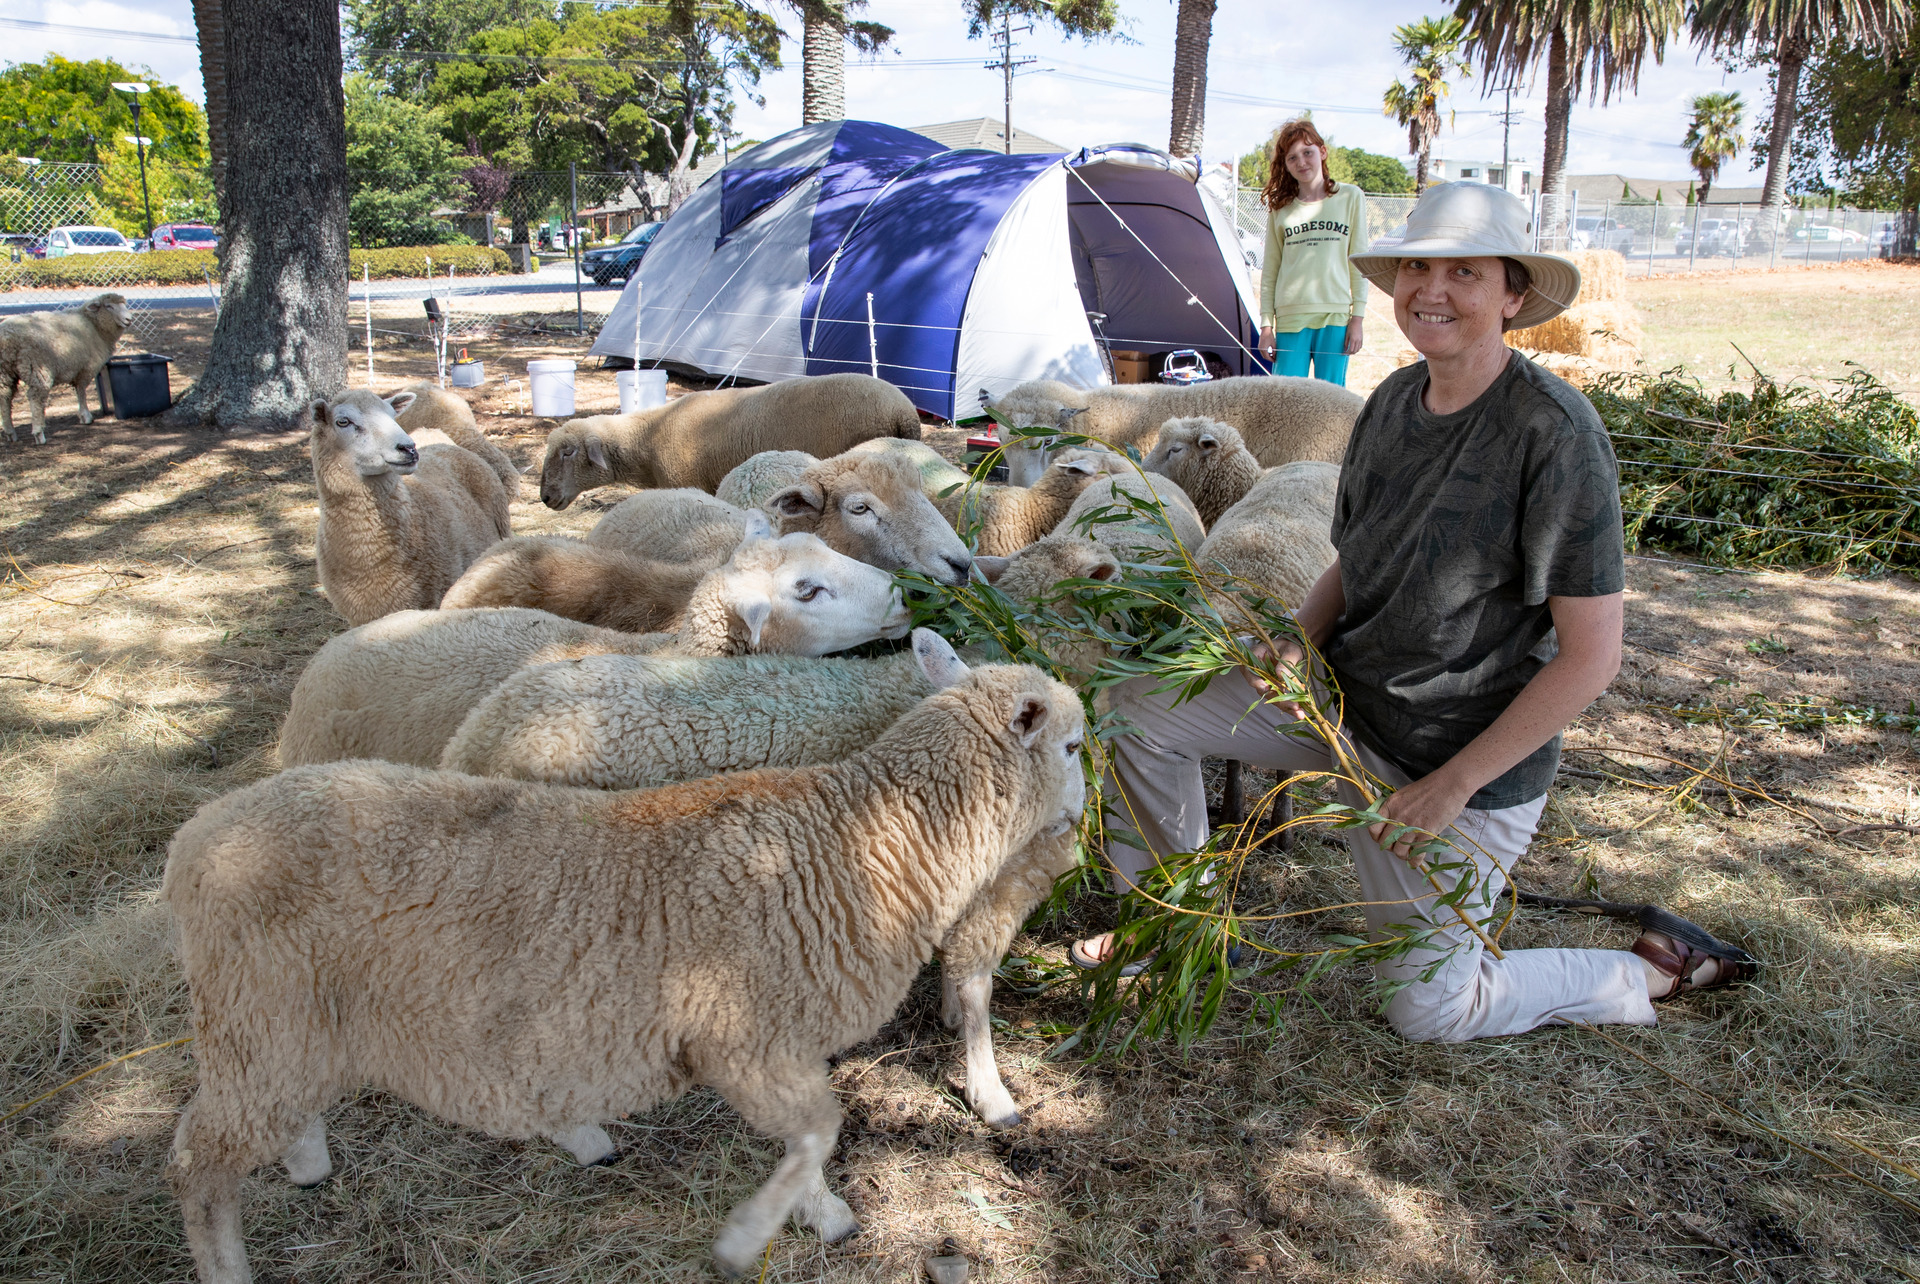 Nelson bush fire evacuees camp out with their sheep - NZ Herald